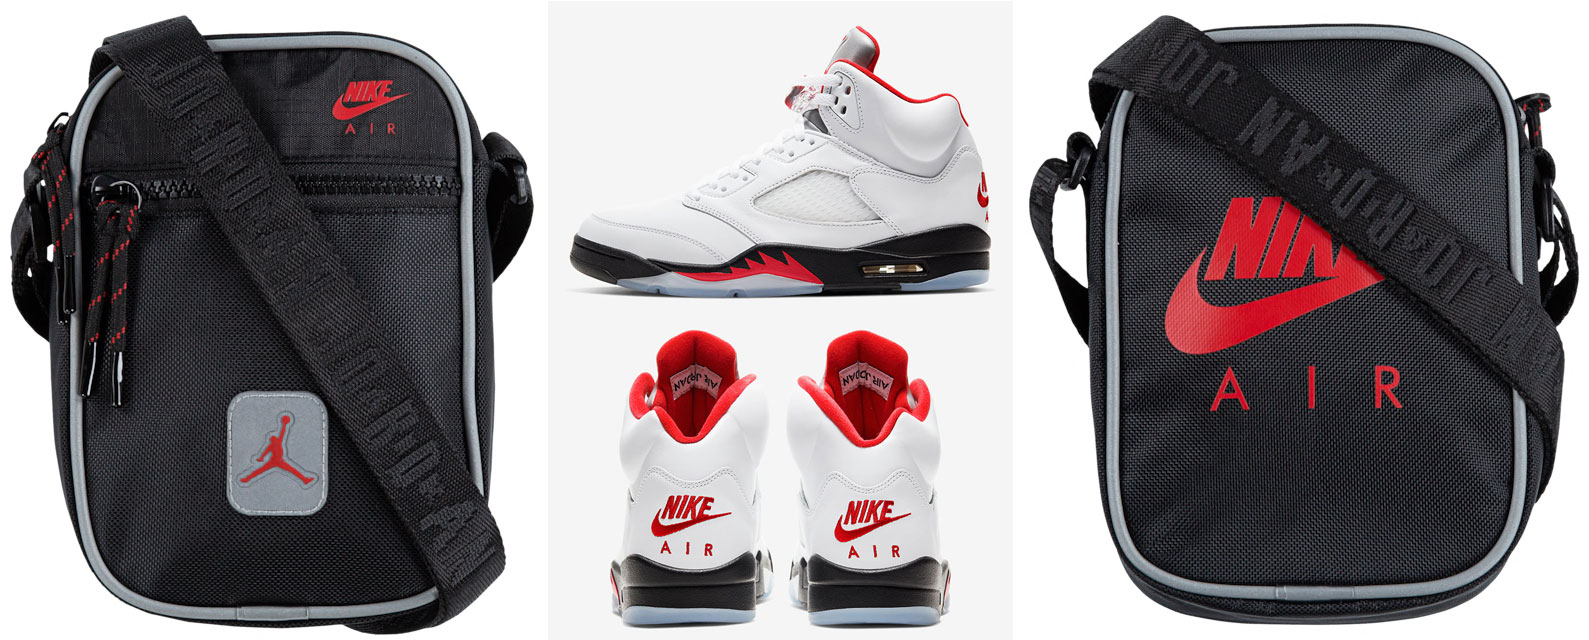 air-jordan-5-fire-red-bag